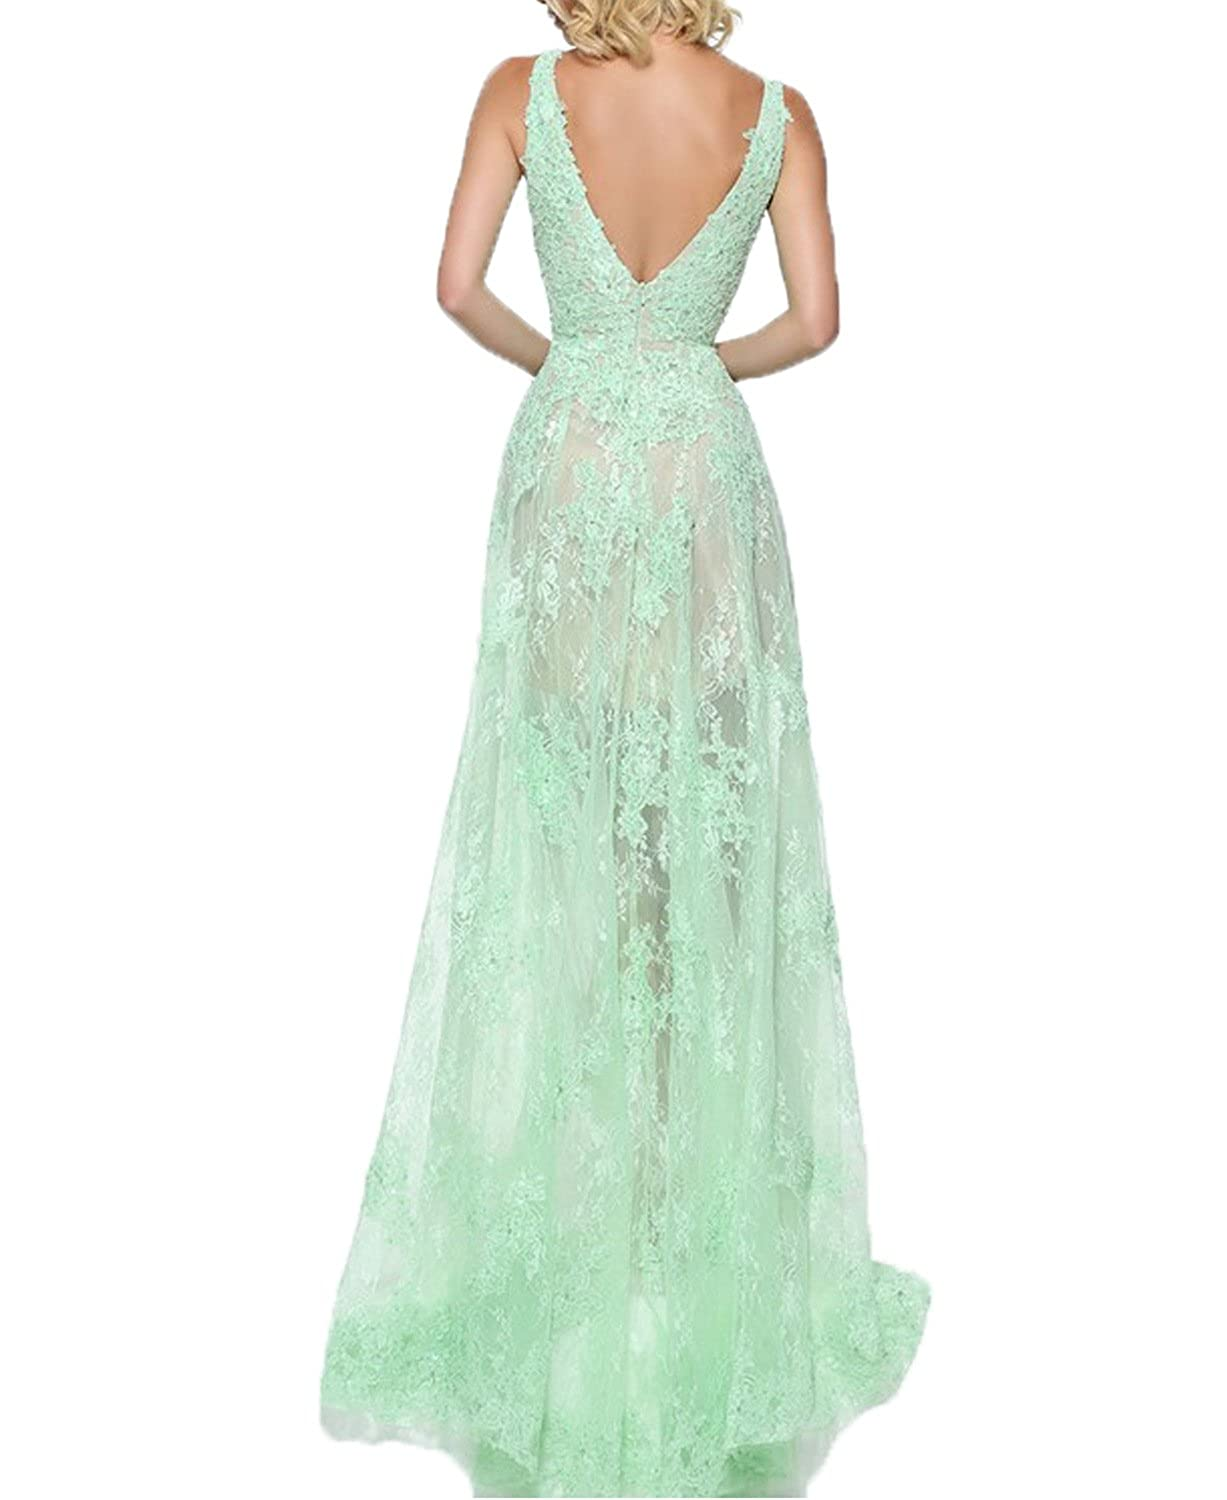 BONBETE Womens V Neck High Low Mint Green Sexy Lace Prom Dress Long Party Evening Dress at Amazon Womens Clothing store: